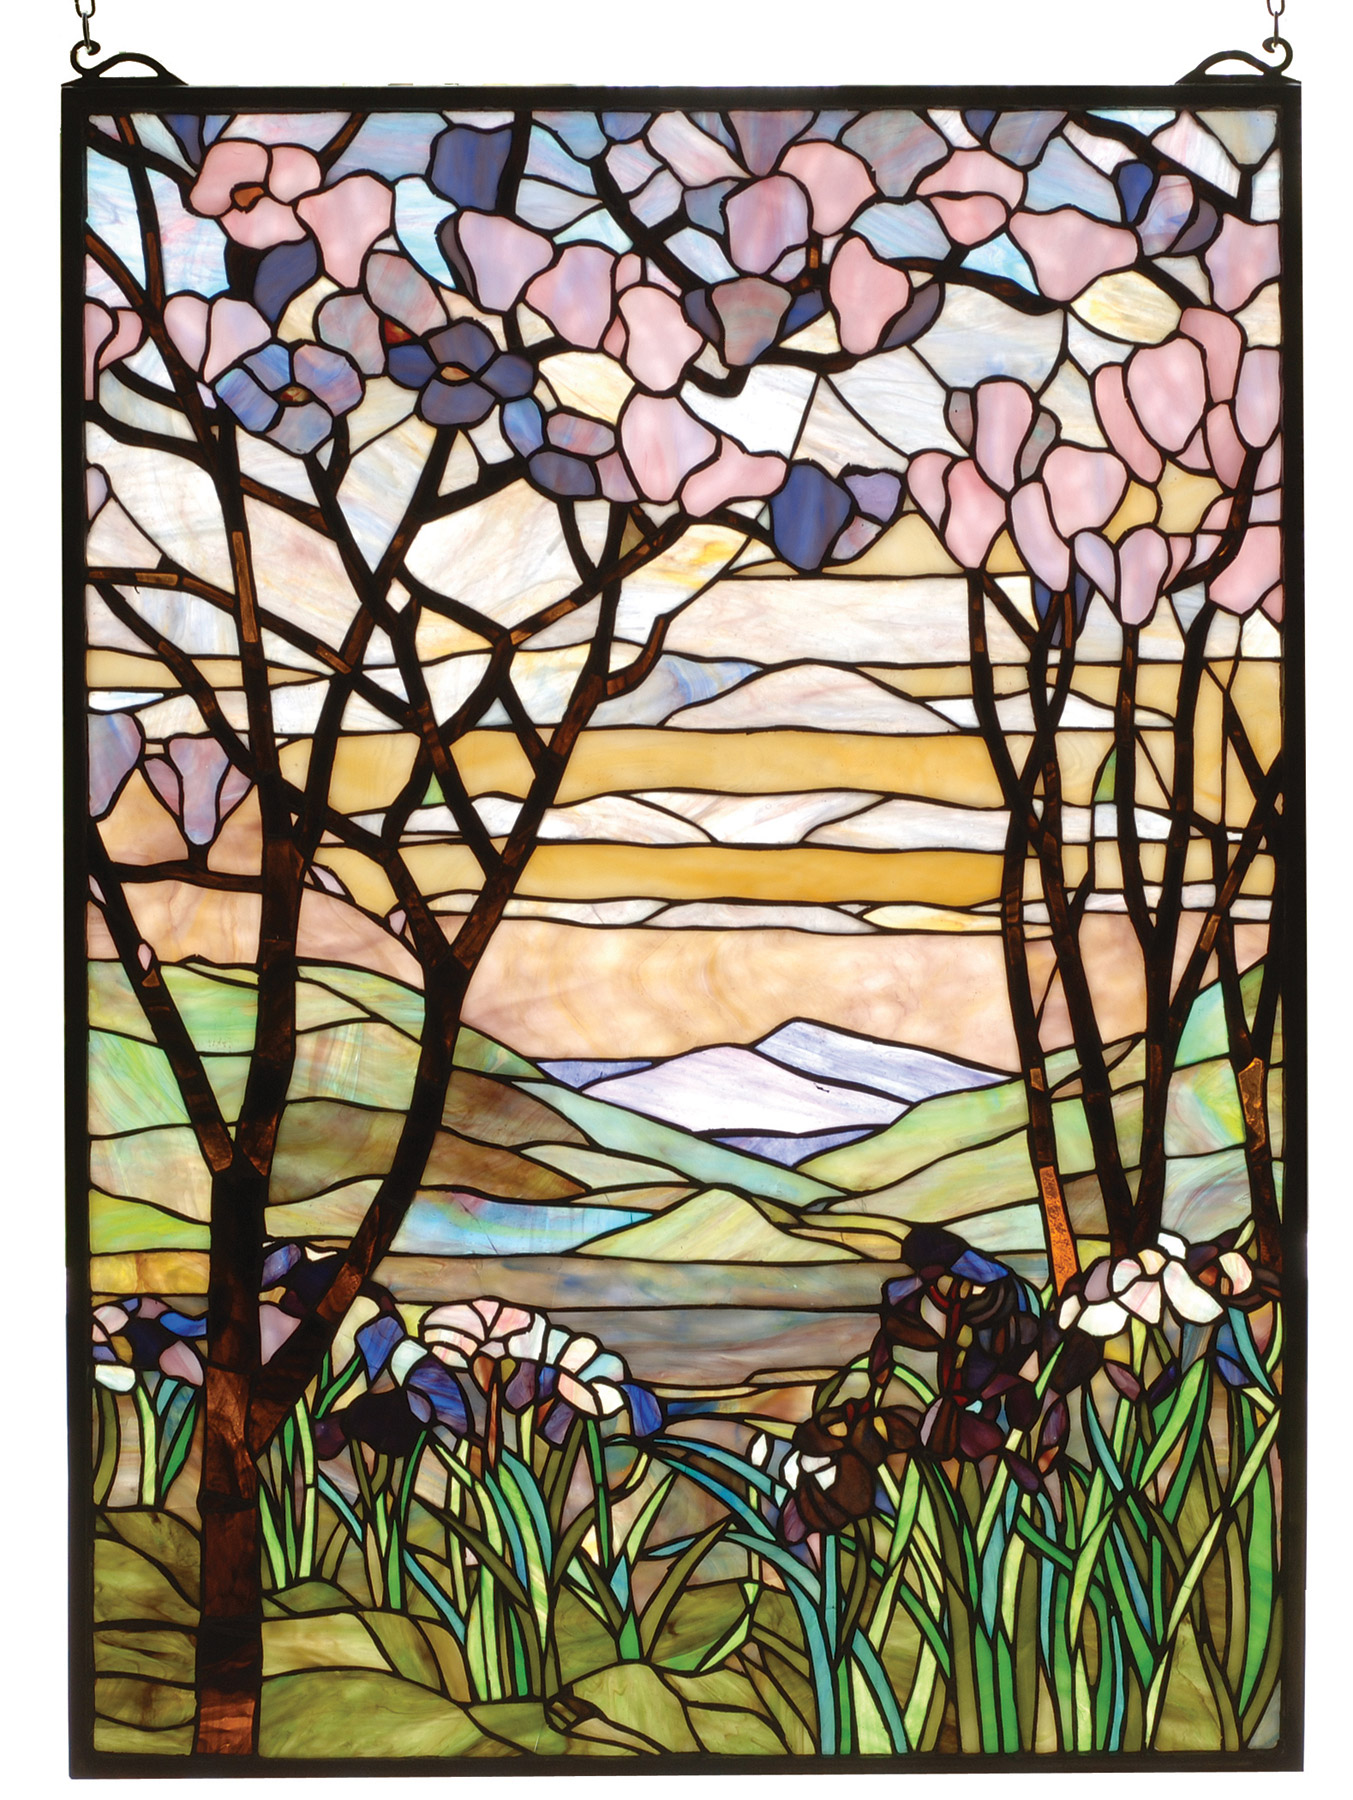 Meyda 98589 Tiffany Magnolia Amp Iris Stained Glass Window